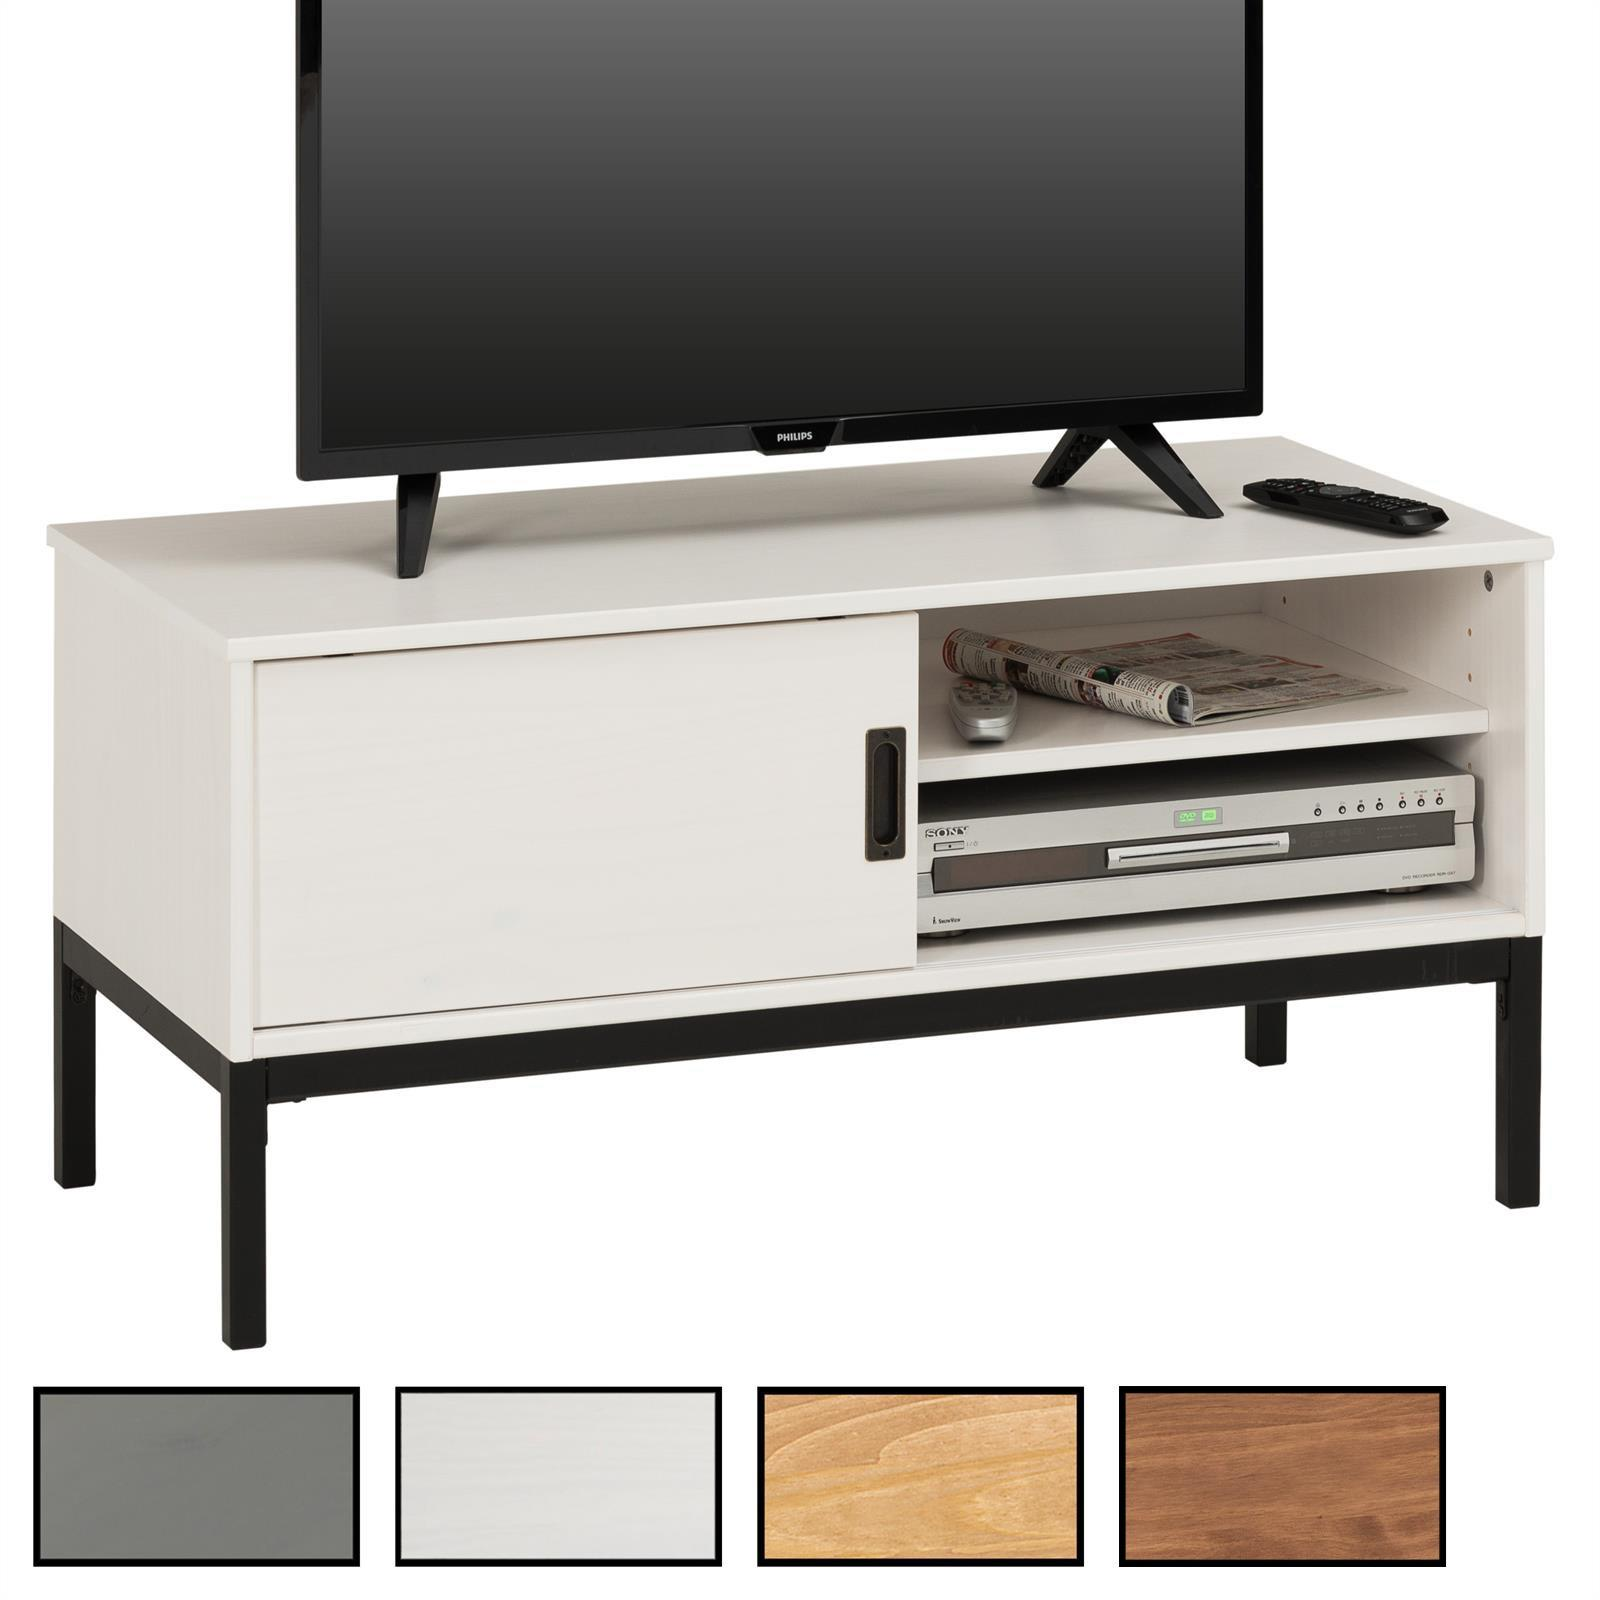 tv lowboard selma mit 1 schiebet r mobilia24. Black Bedroom Furniture Sets. Home Design Ideas